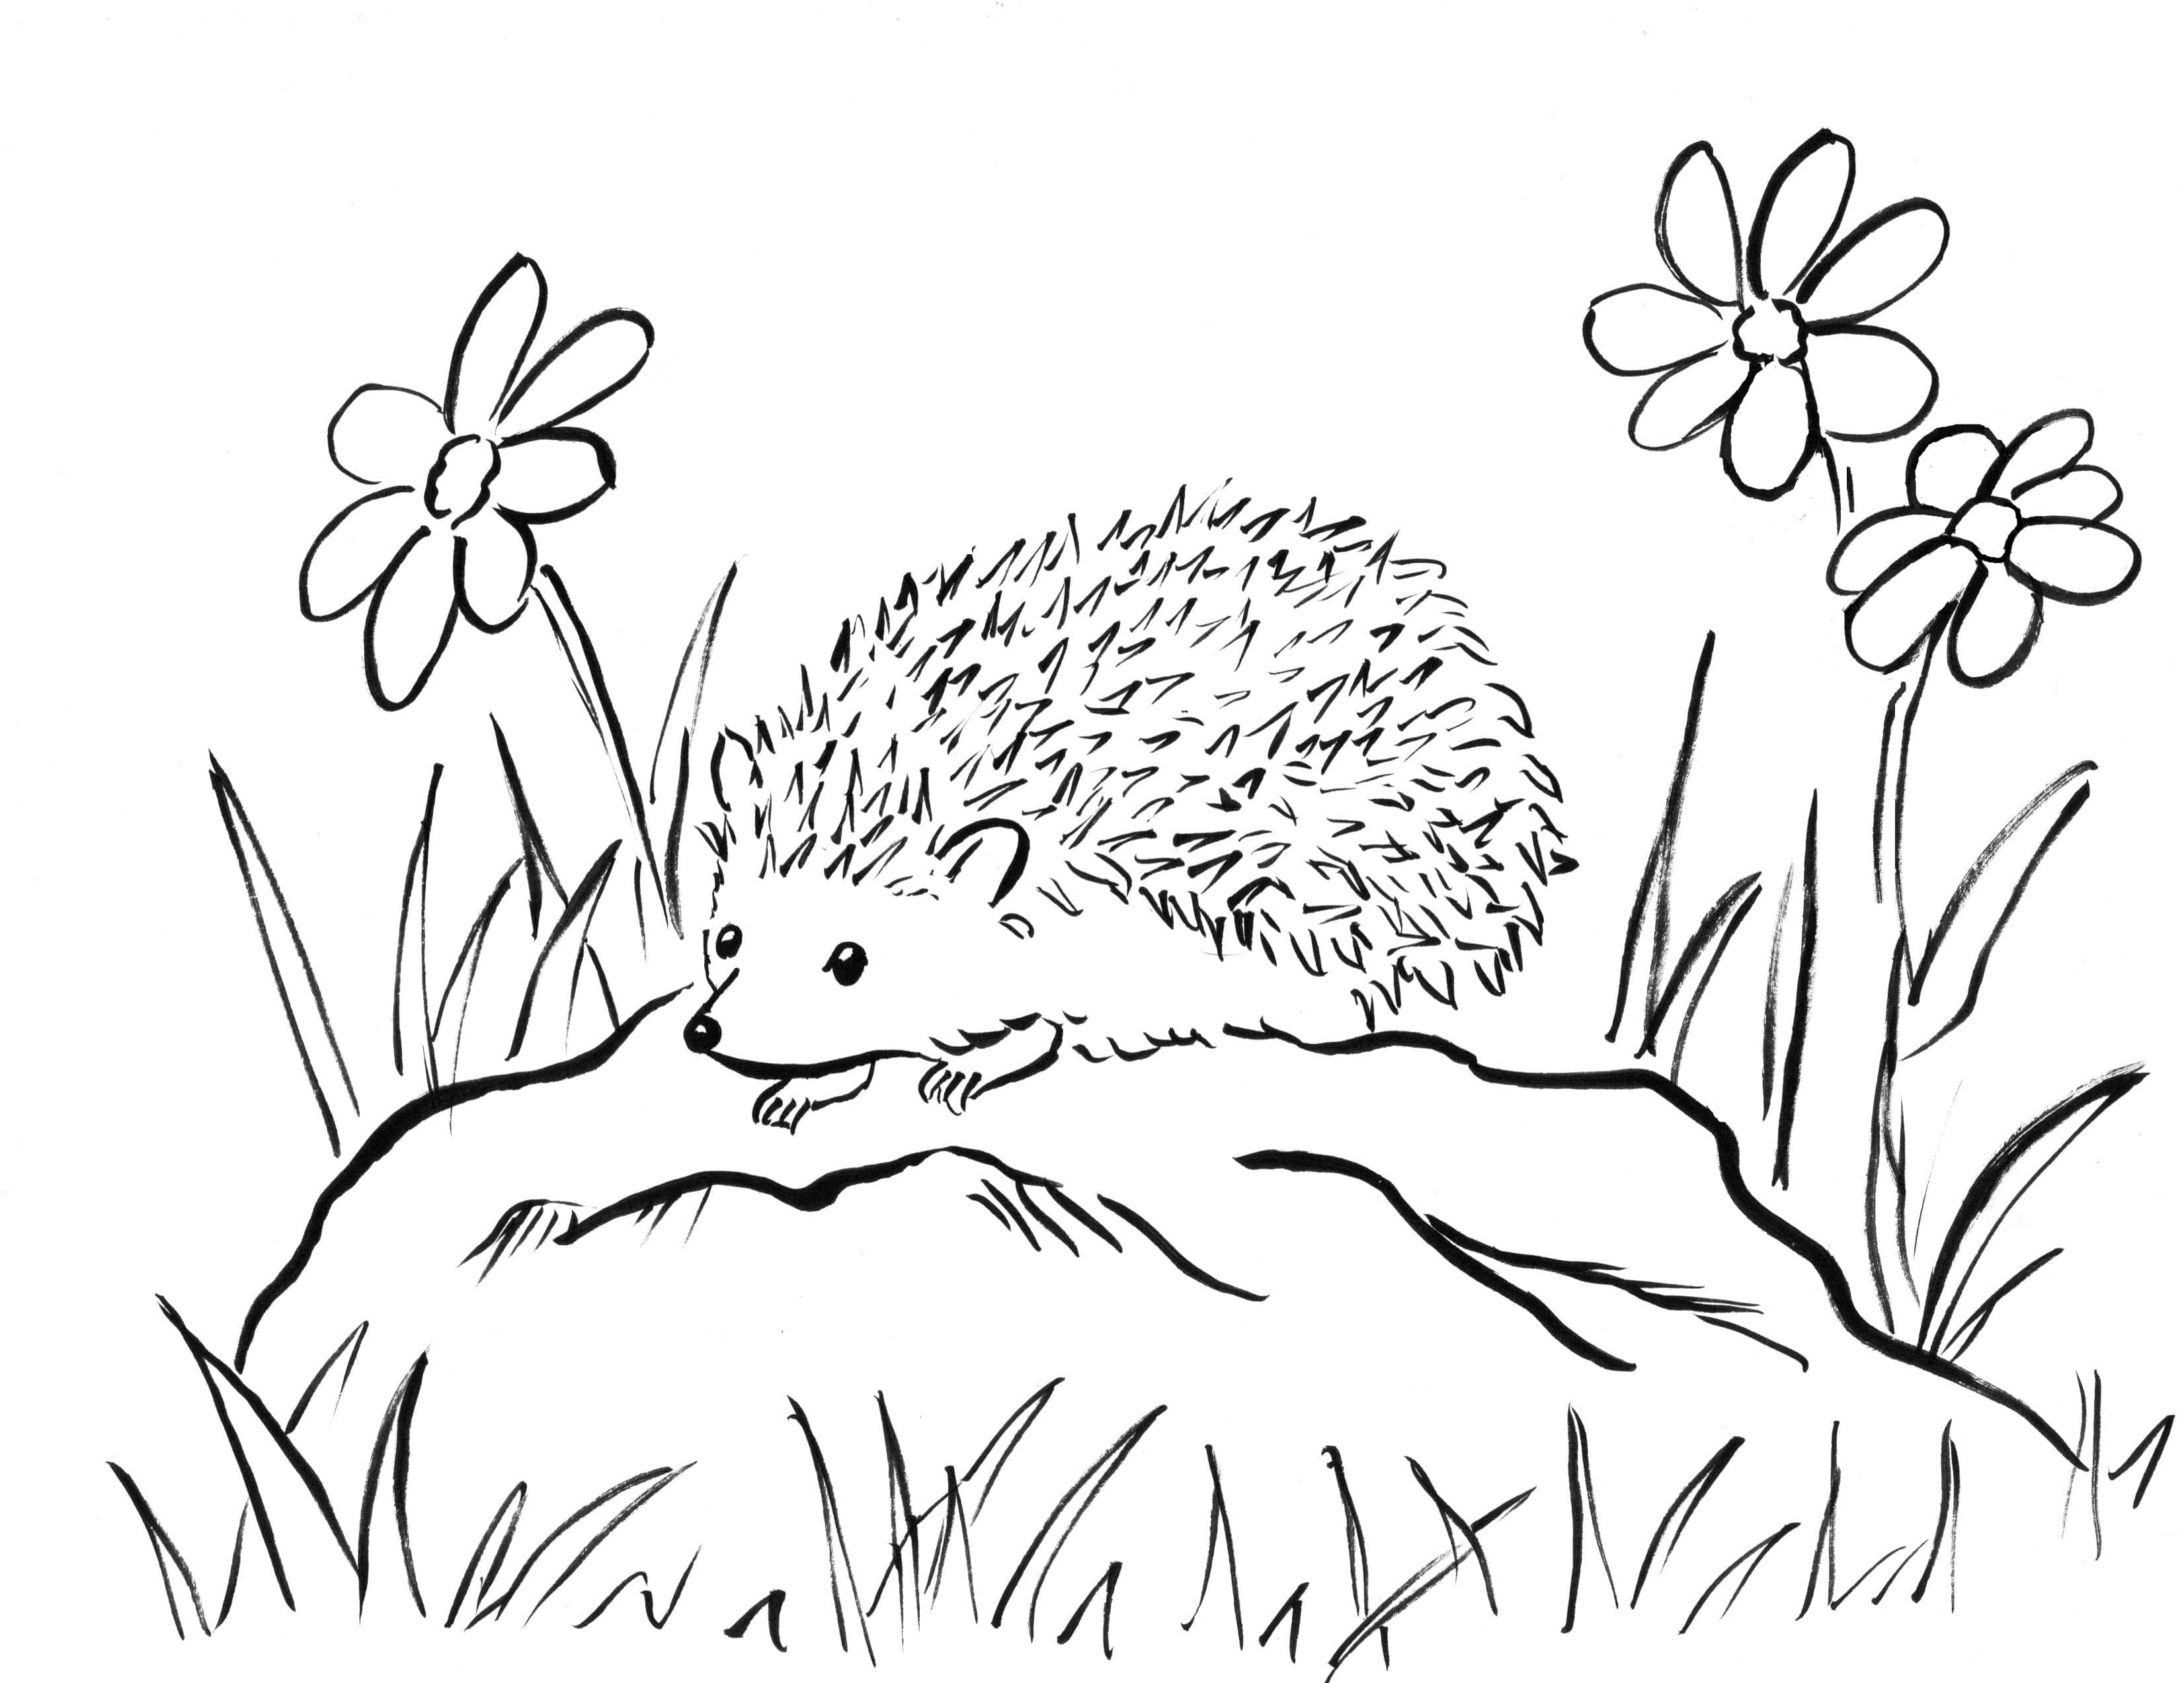 baby hedgehog coloring pages hedgehog coloring pages for children 100 images print hedgehog baby coloring pages